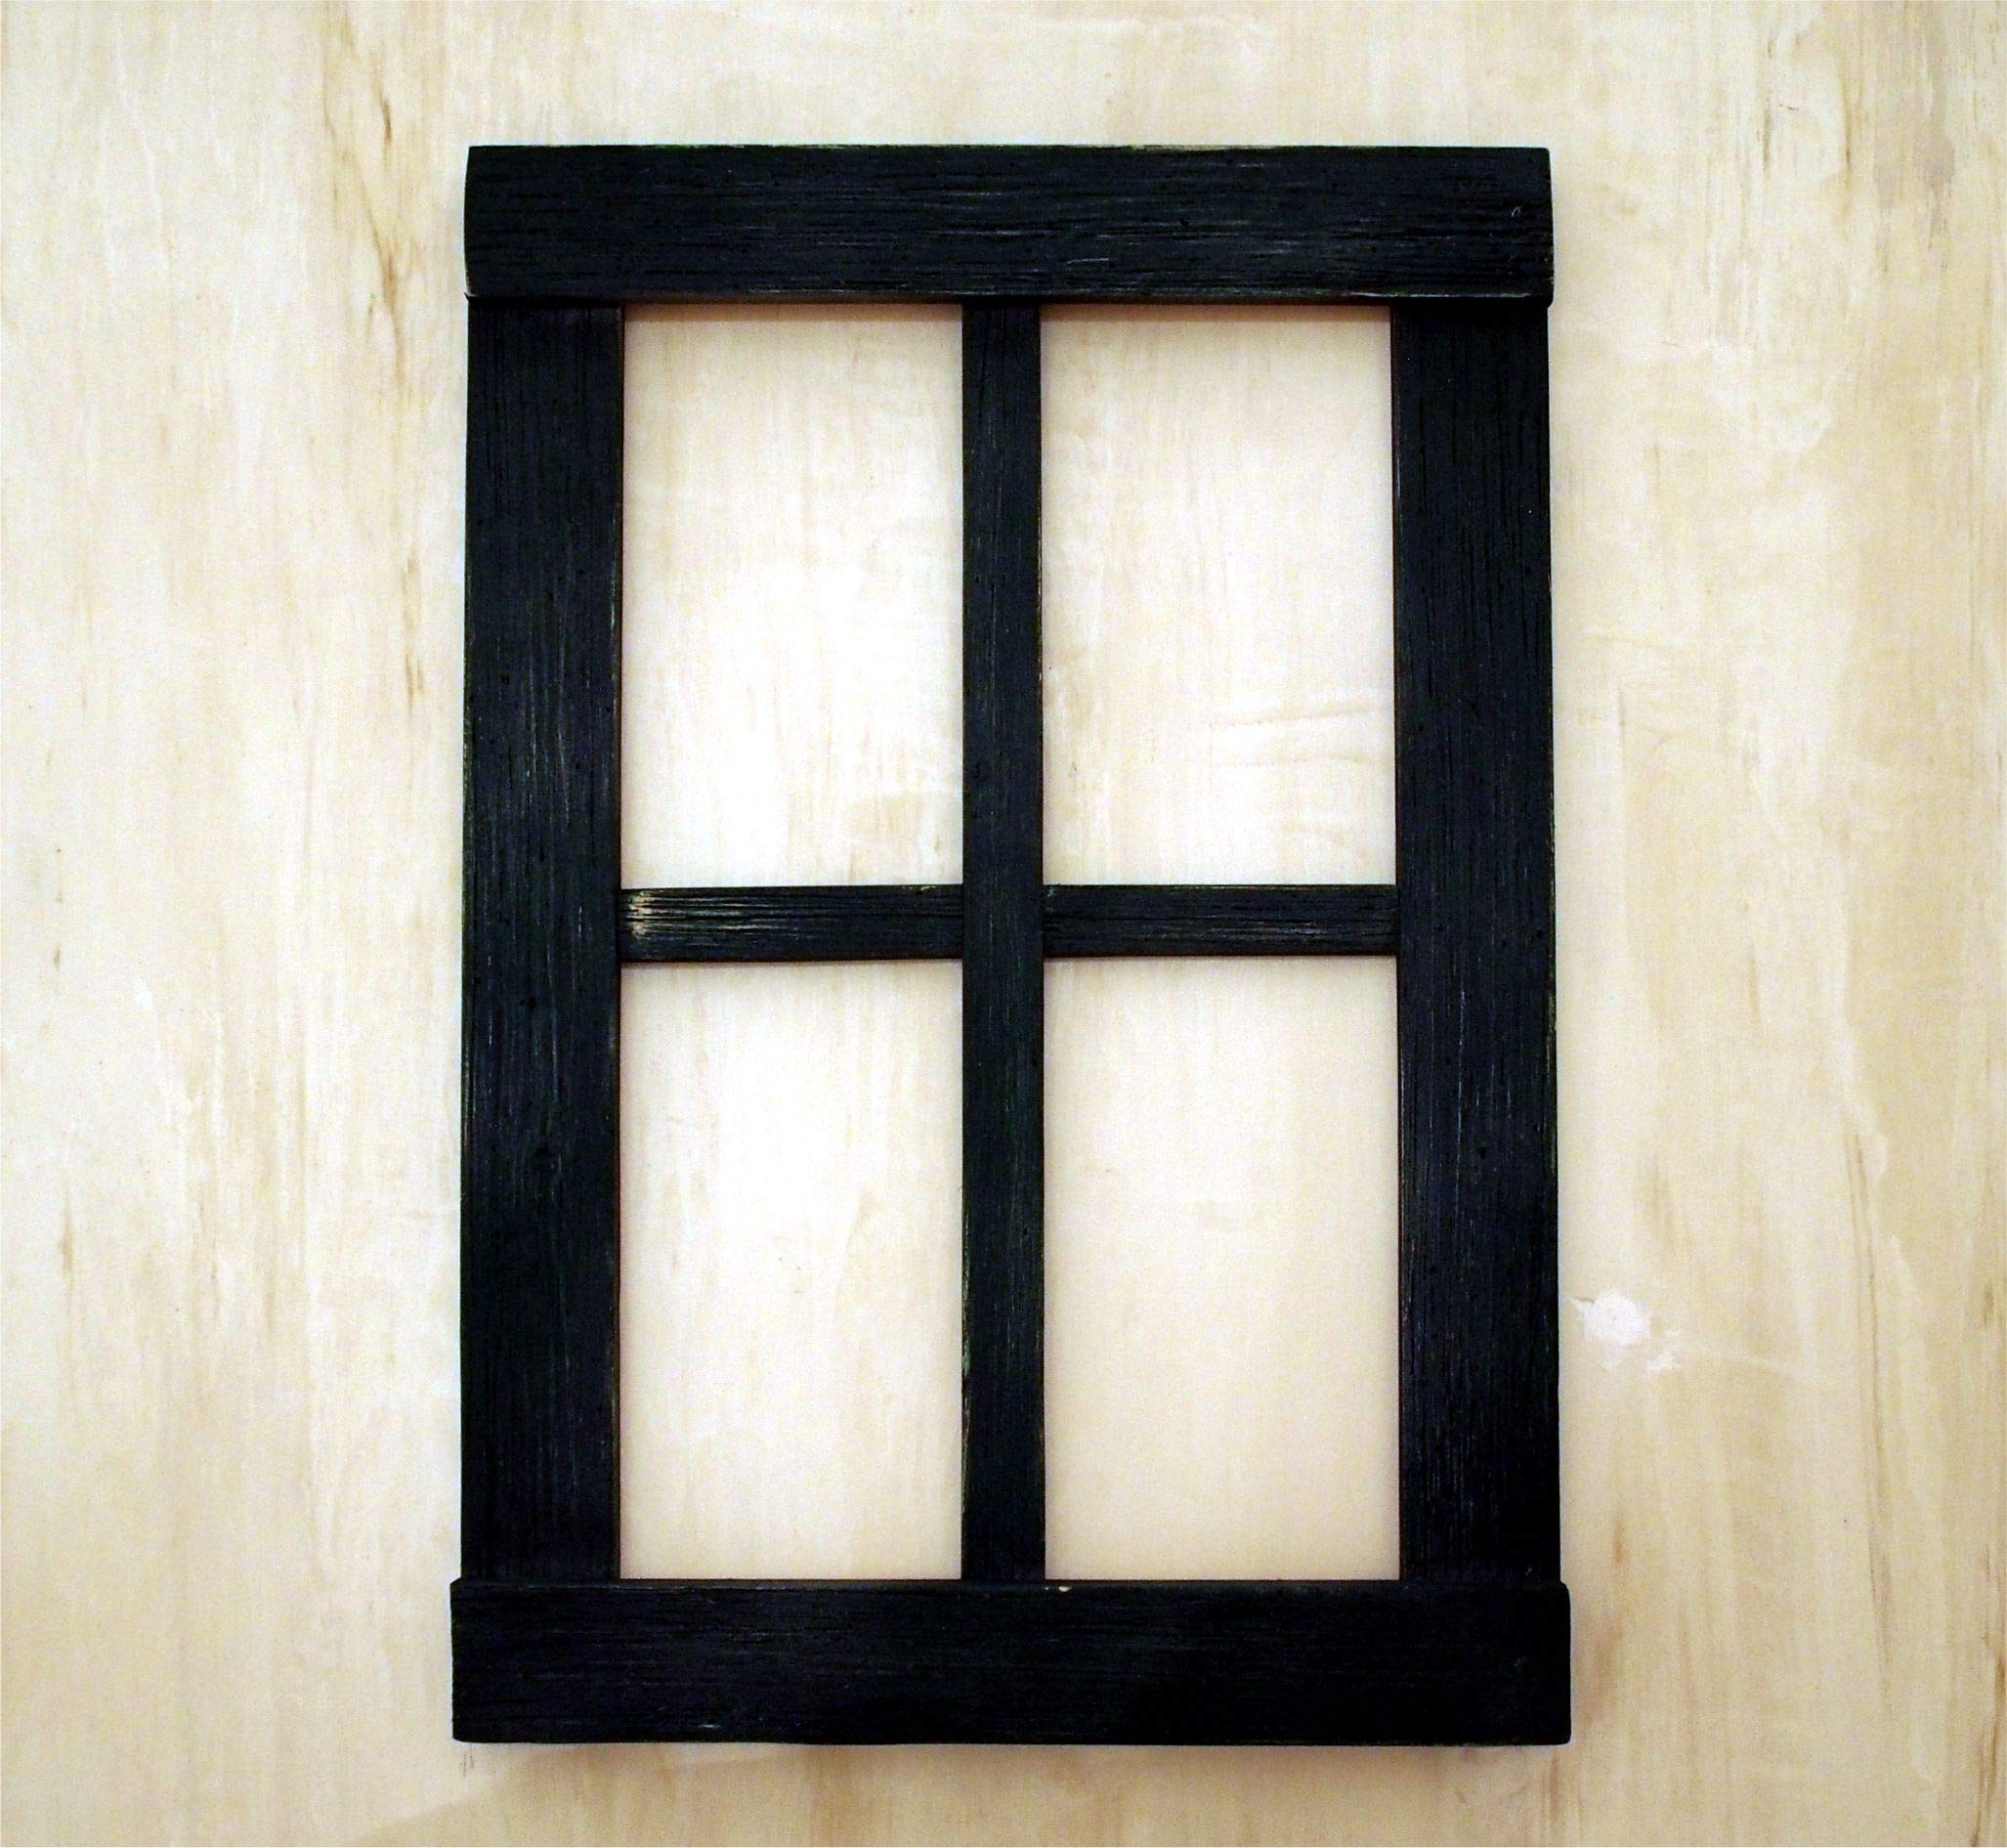 Rustic Home Decor Window Barnwood Frames | Handmade of distressed hardwood in the Color of your Choosing | Farmhouse, Bathroom, Kitchen Wood Wall Decor | Indoor and Outdoor Decoration